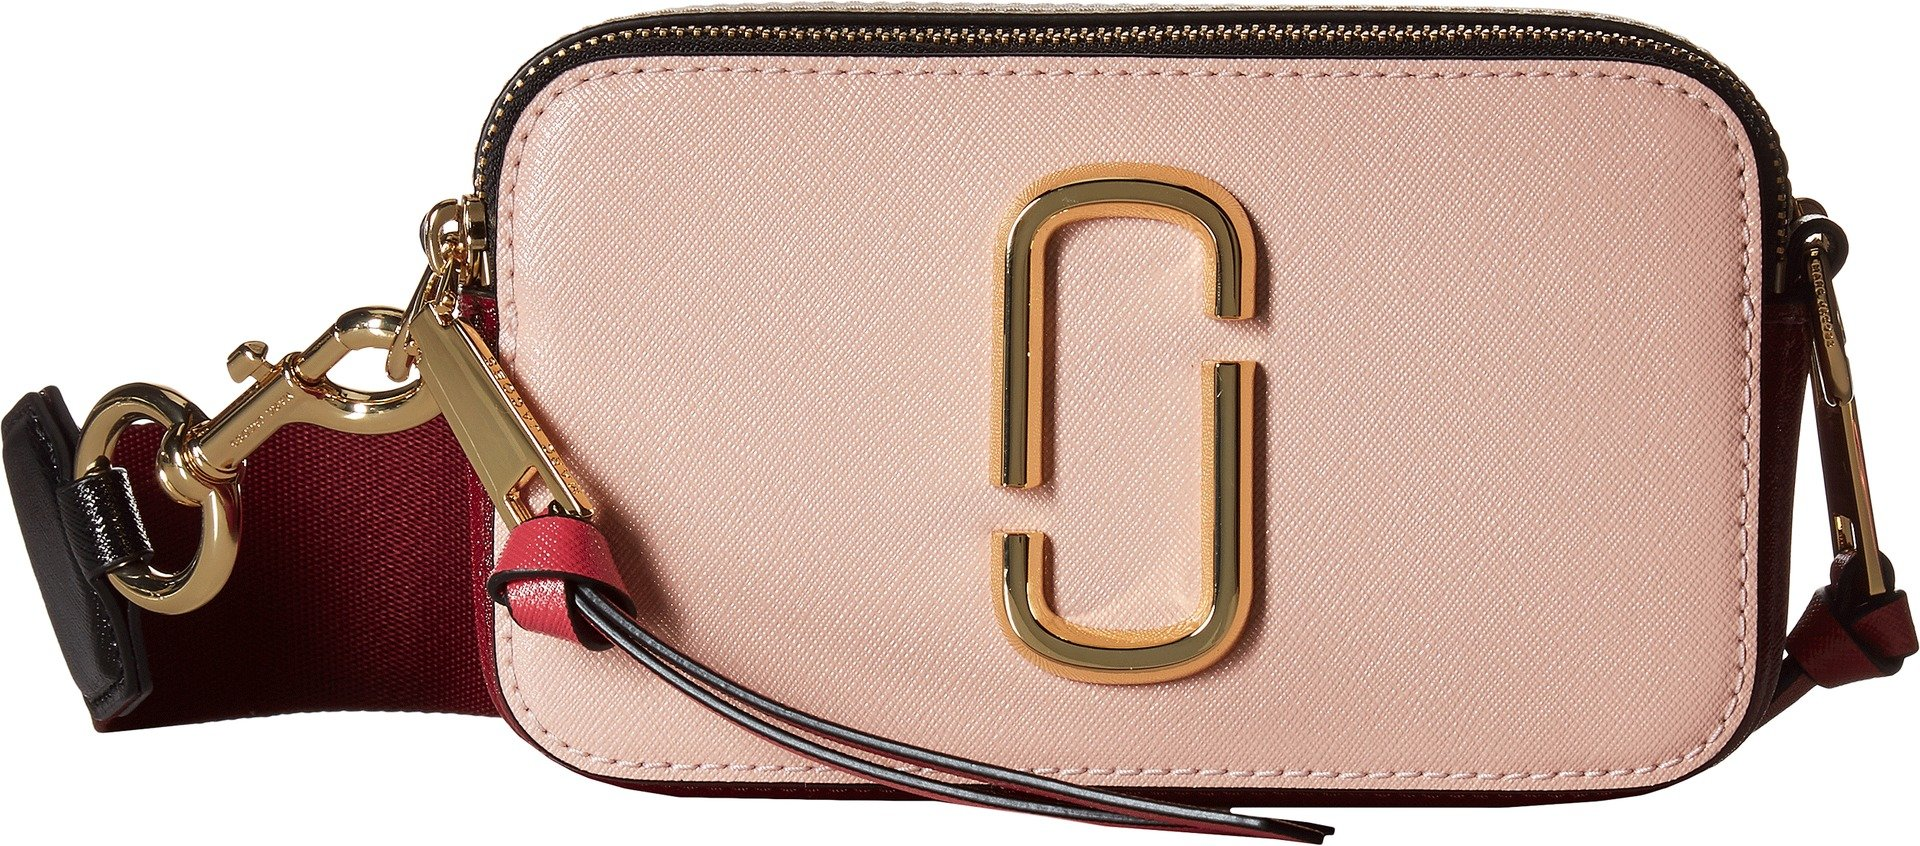 Marc Jacobs Women's Snapshot Camera Bag, Rose, One Size